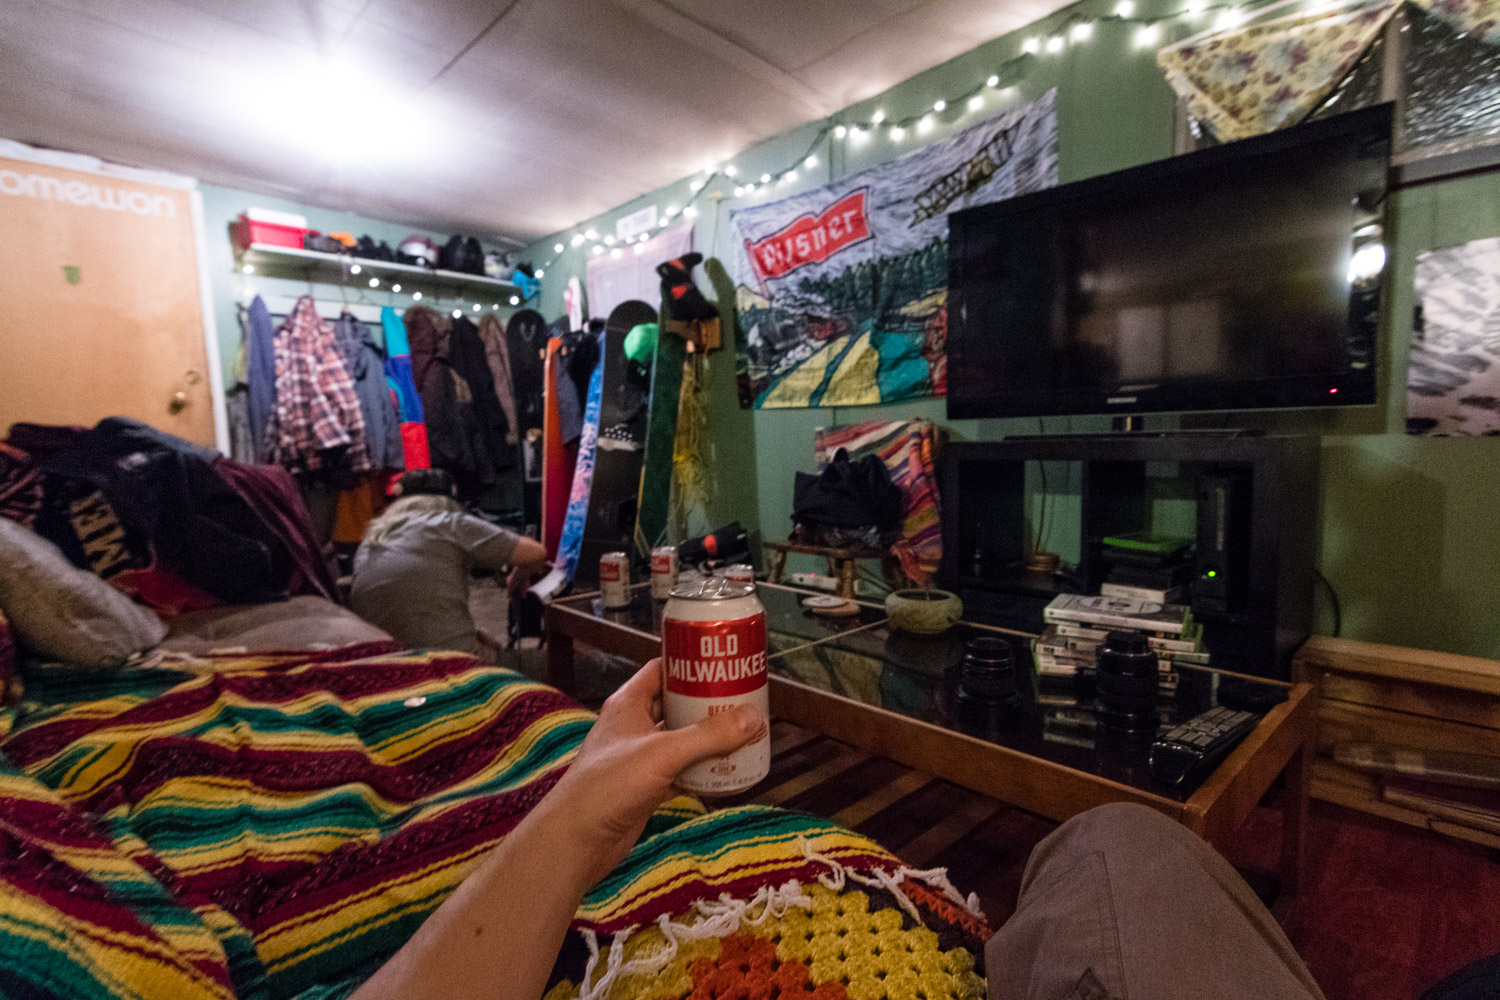 I didn't really know what to expect from staying in a trailer park, but it was very comfortable and fun.